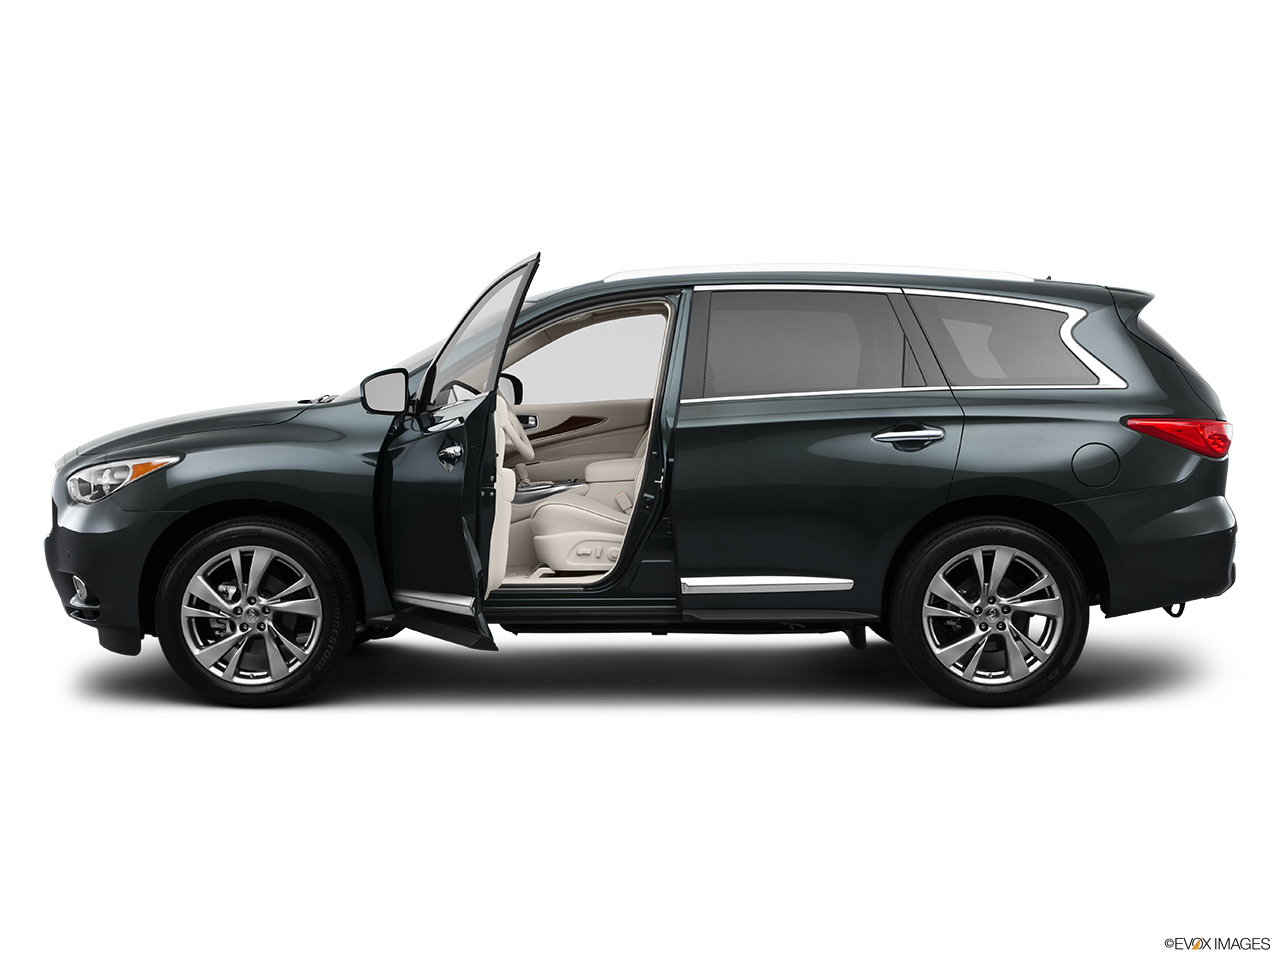 2013 Infiniti JX JX35 Driver's side profile with drivers side door open.